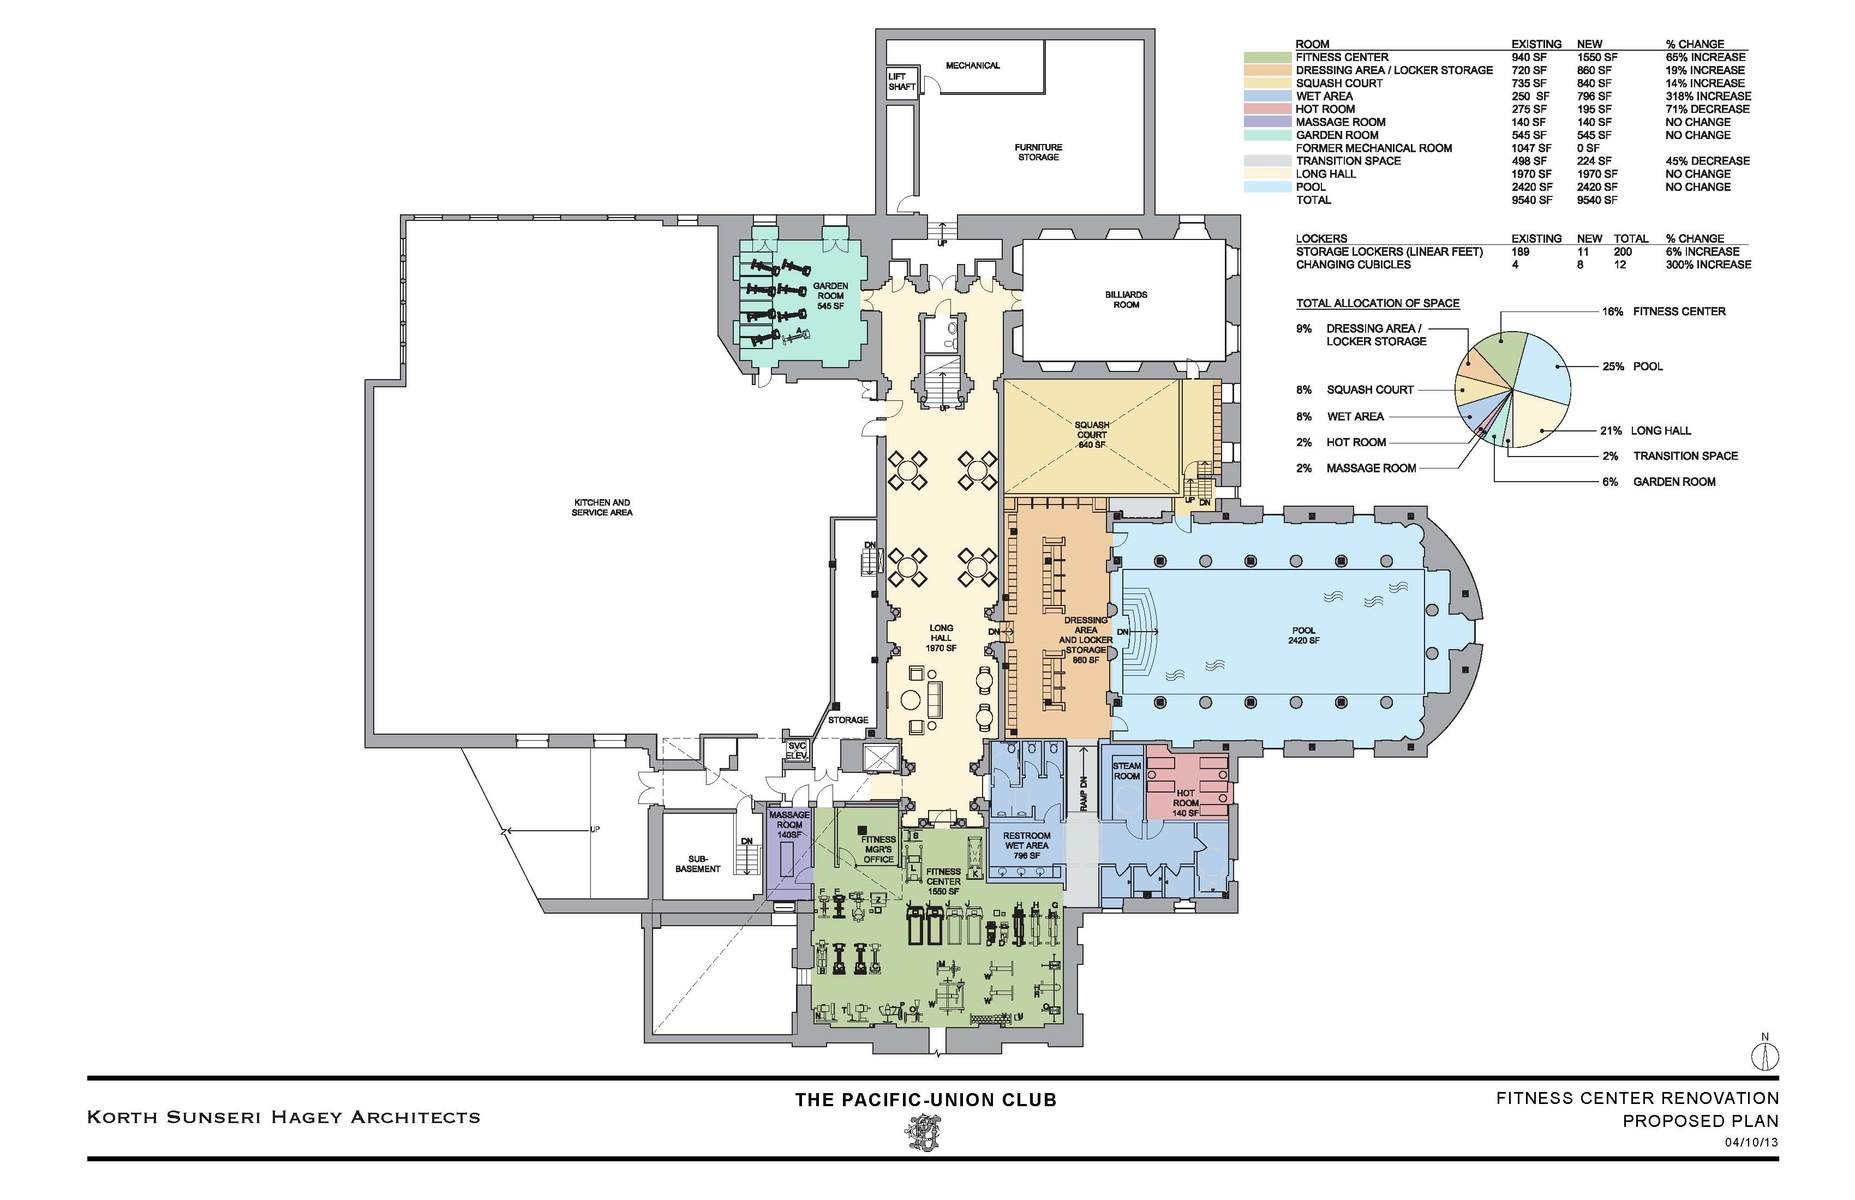 Proposed Fitness Center Plan